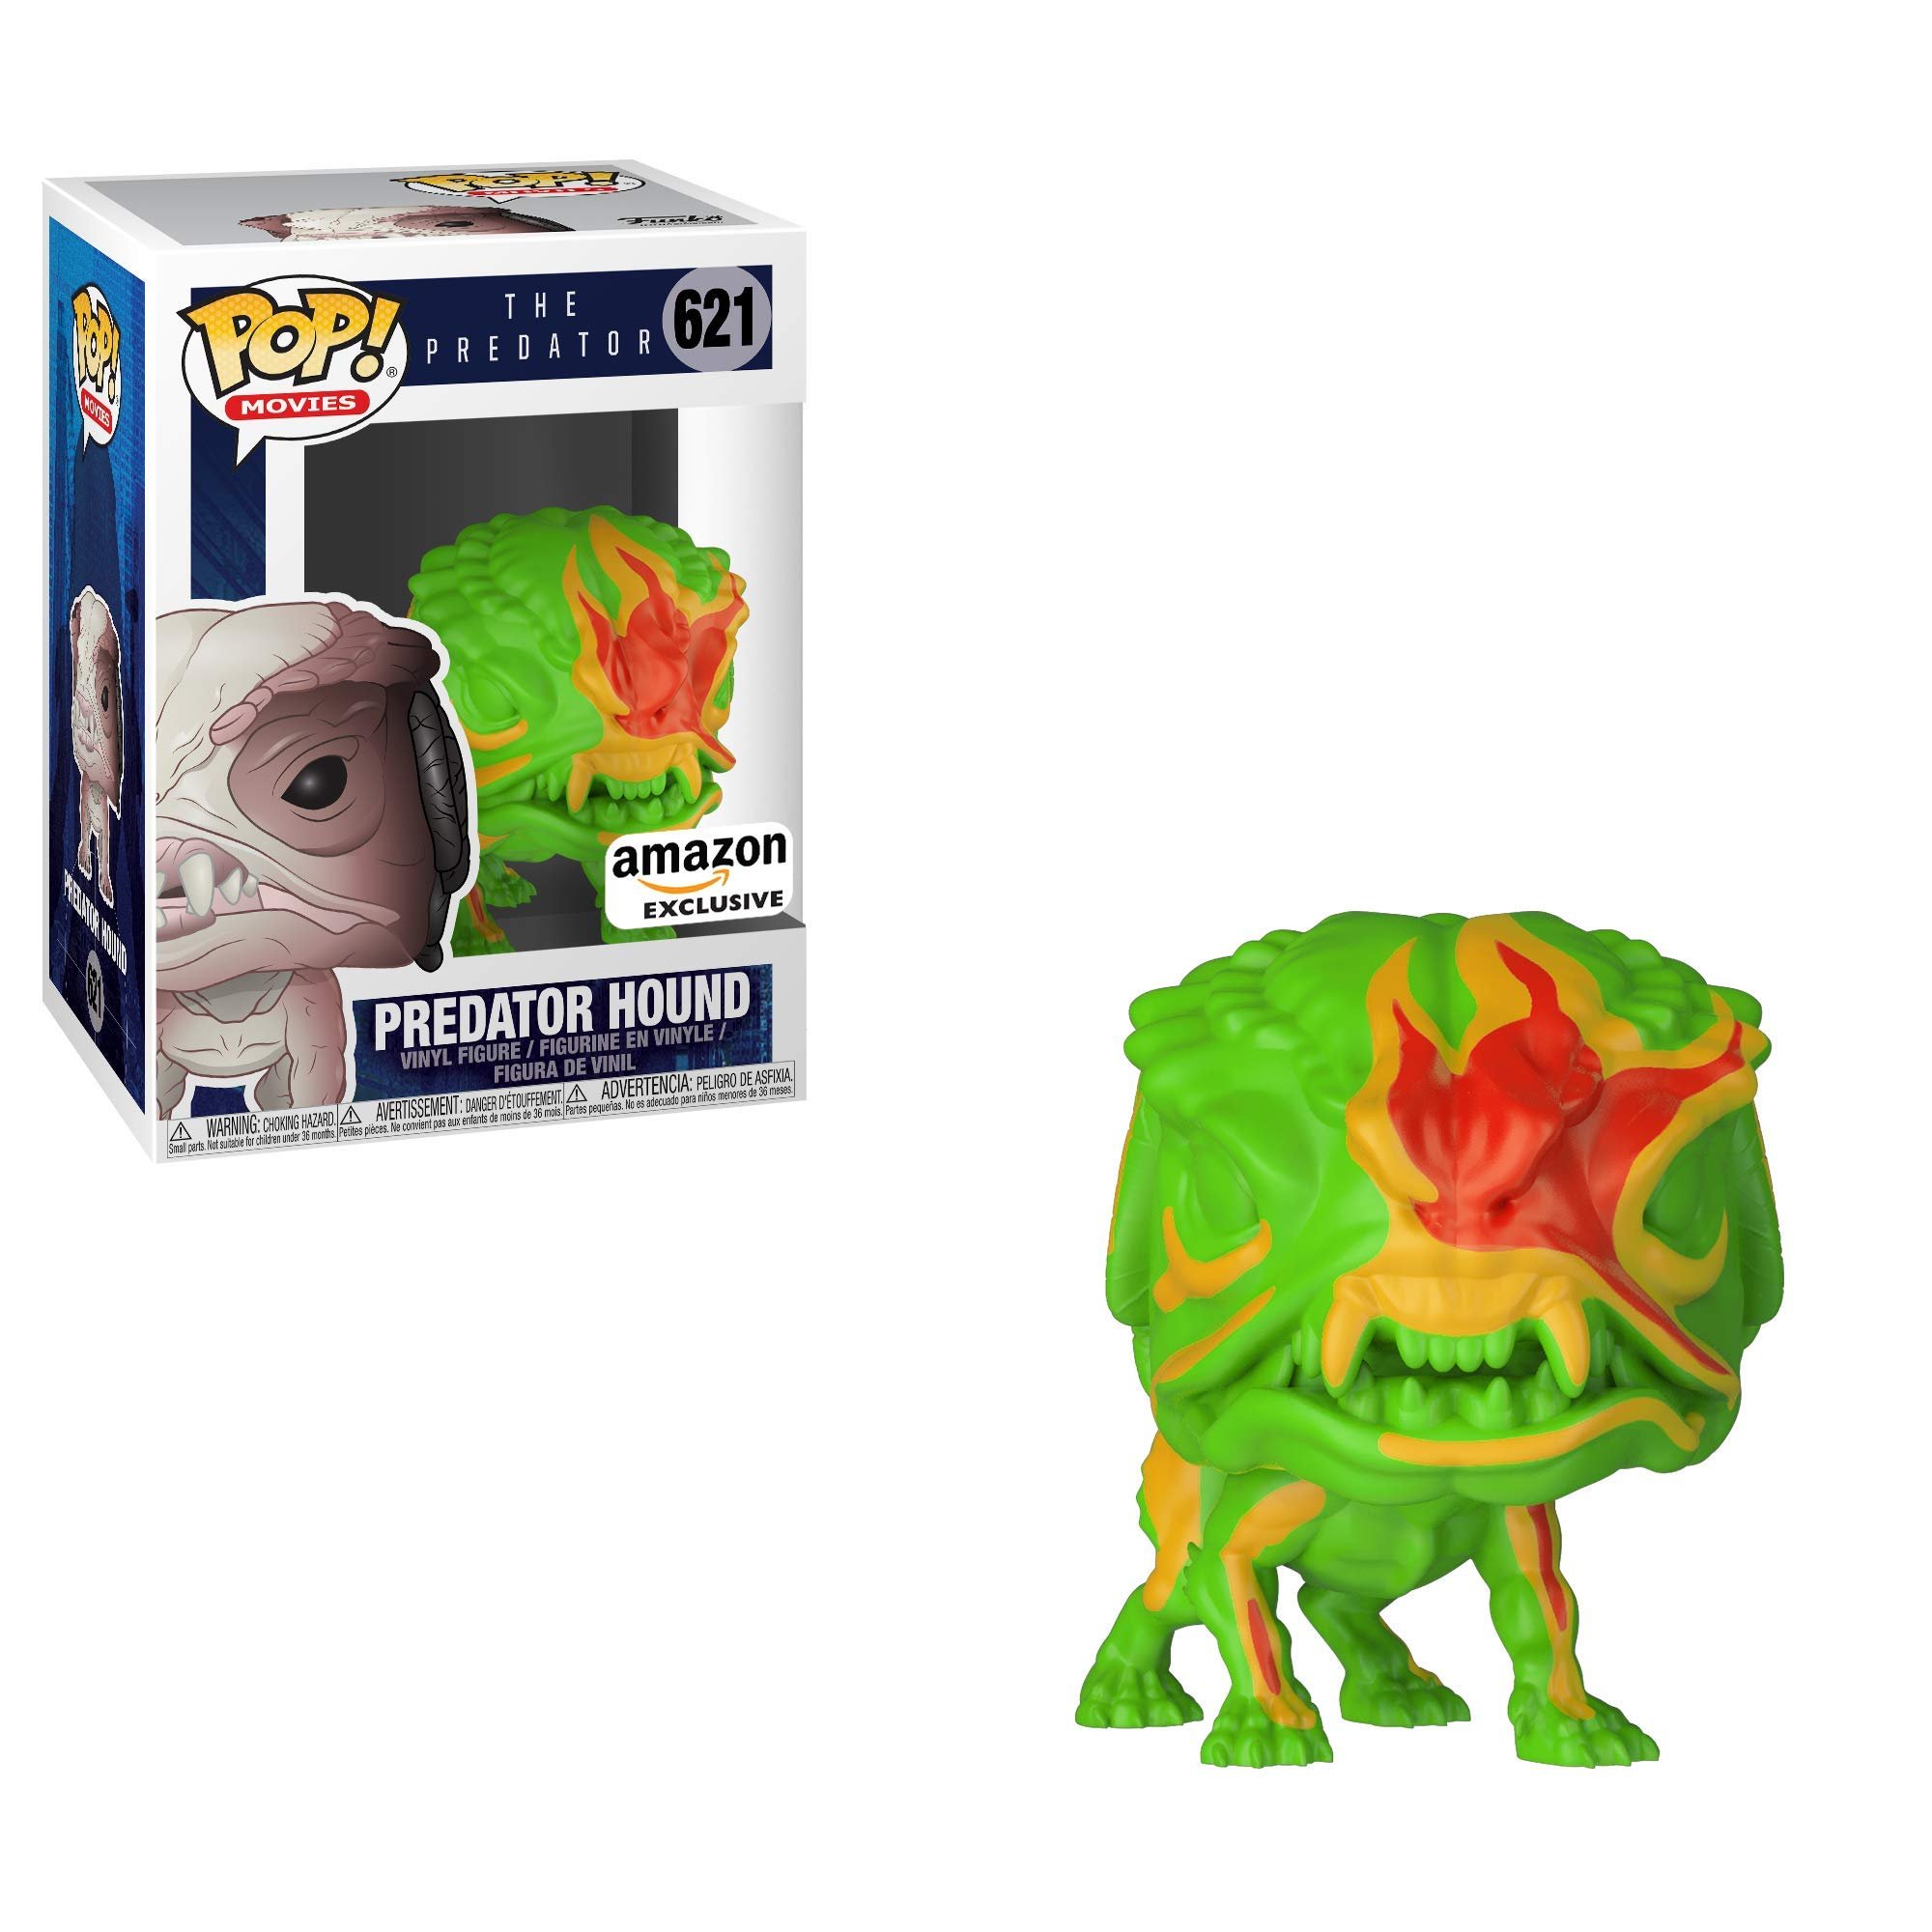 Funko Pop! Movies Heat Vision Predator Hound Amazon Exclusive Collectible Figure, Multicolor by Funko (Image #2)